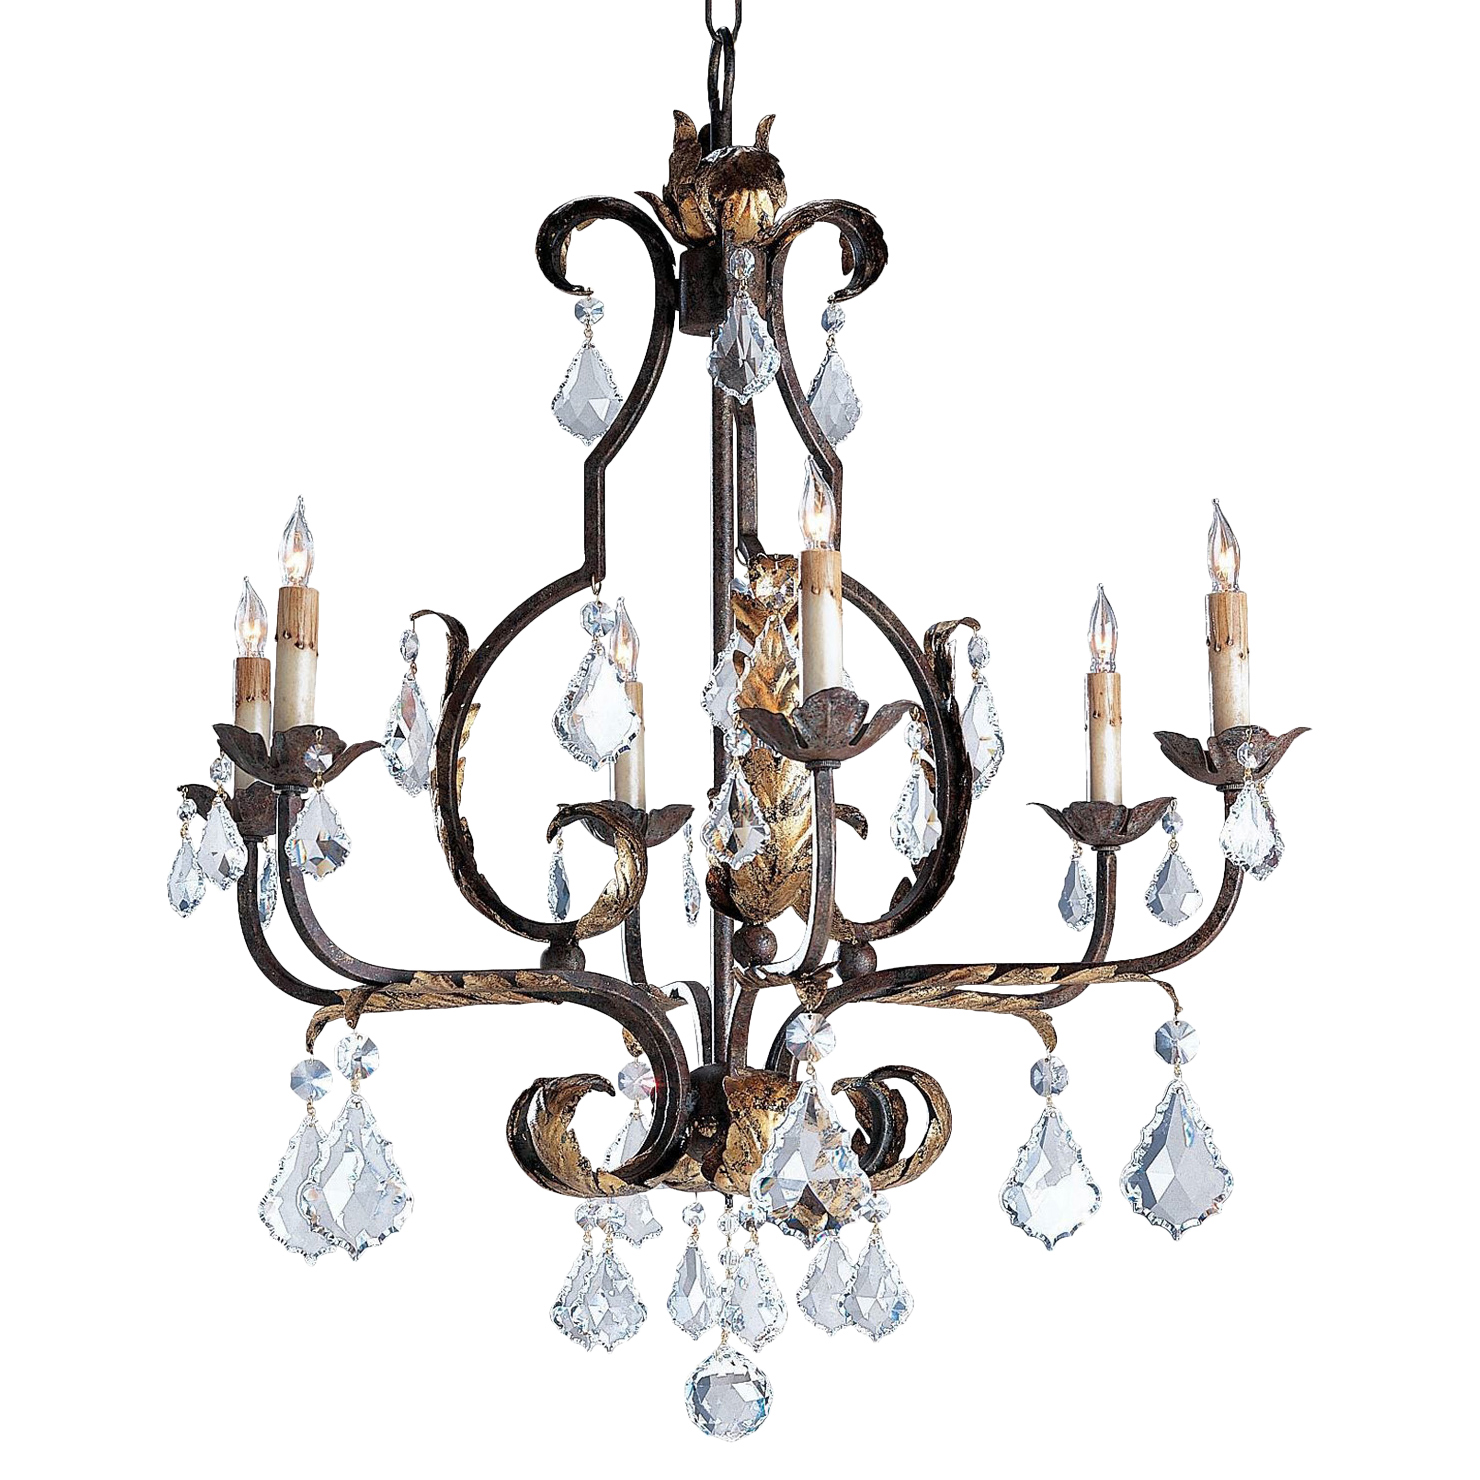 Firenze Italianate Bold Faceted Crystal 6 Light Chandelier